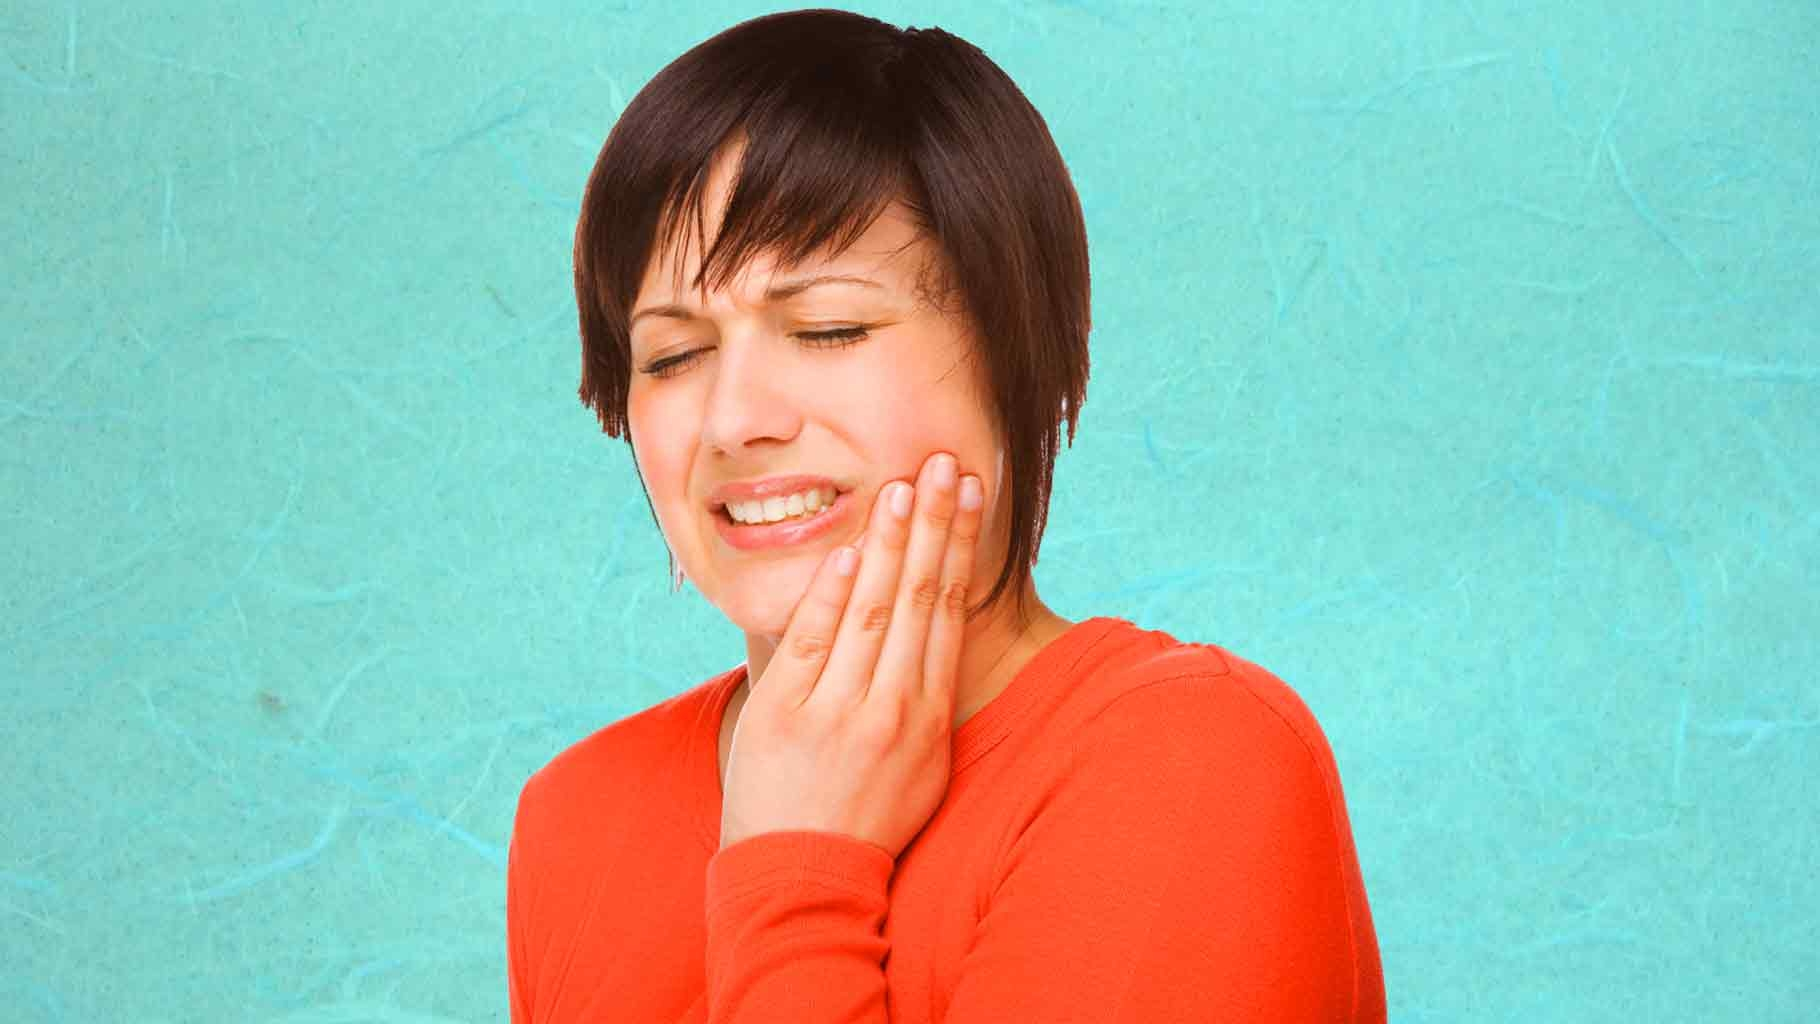 Struggling With Toothache? These Home Remedies Will Relieve Pain